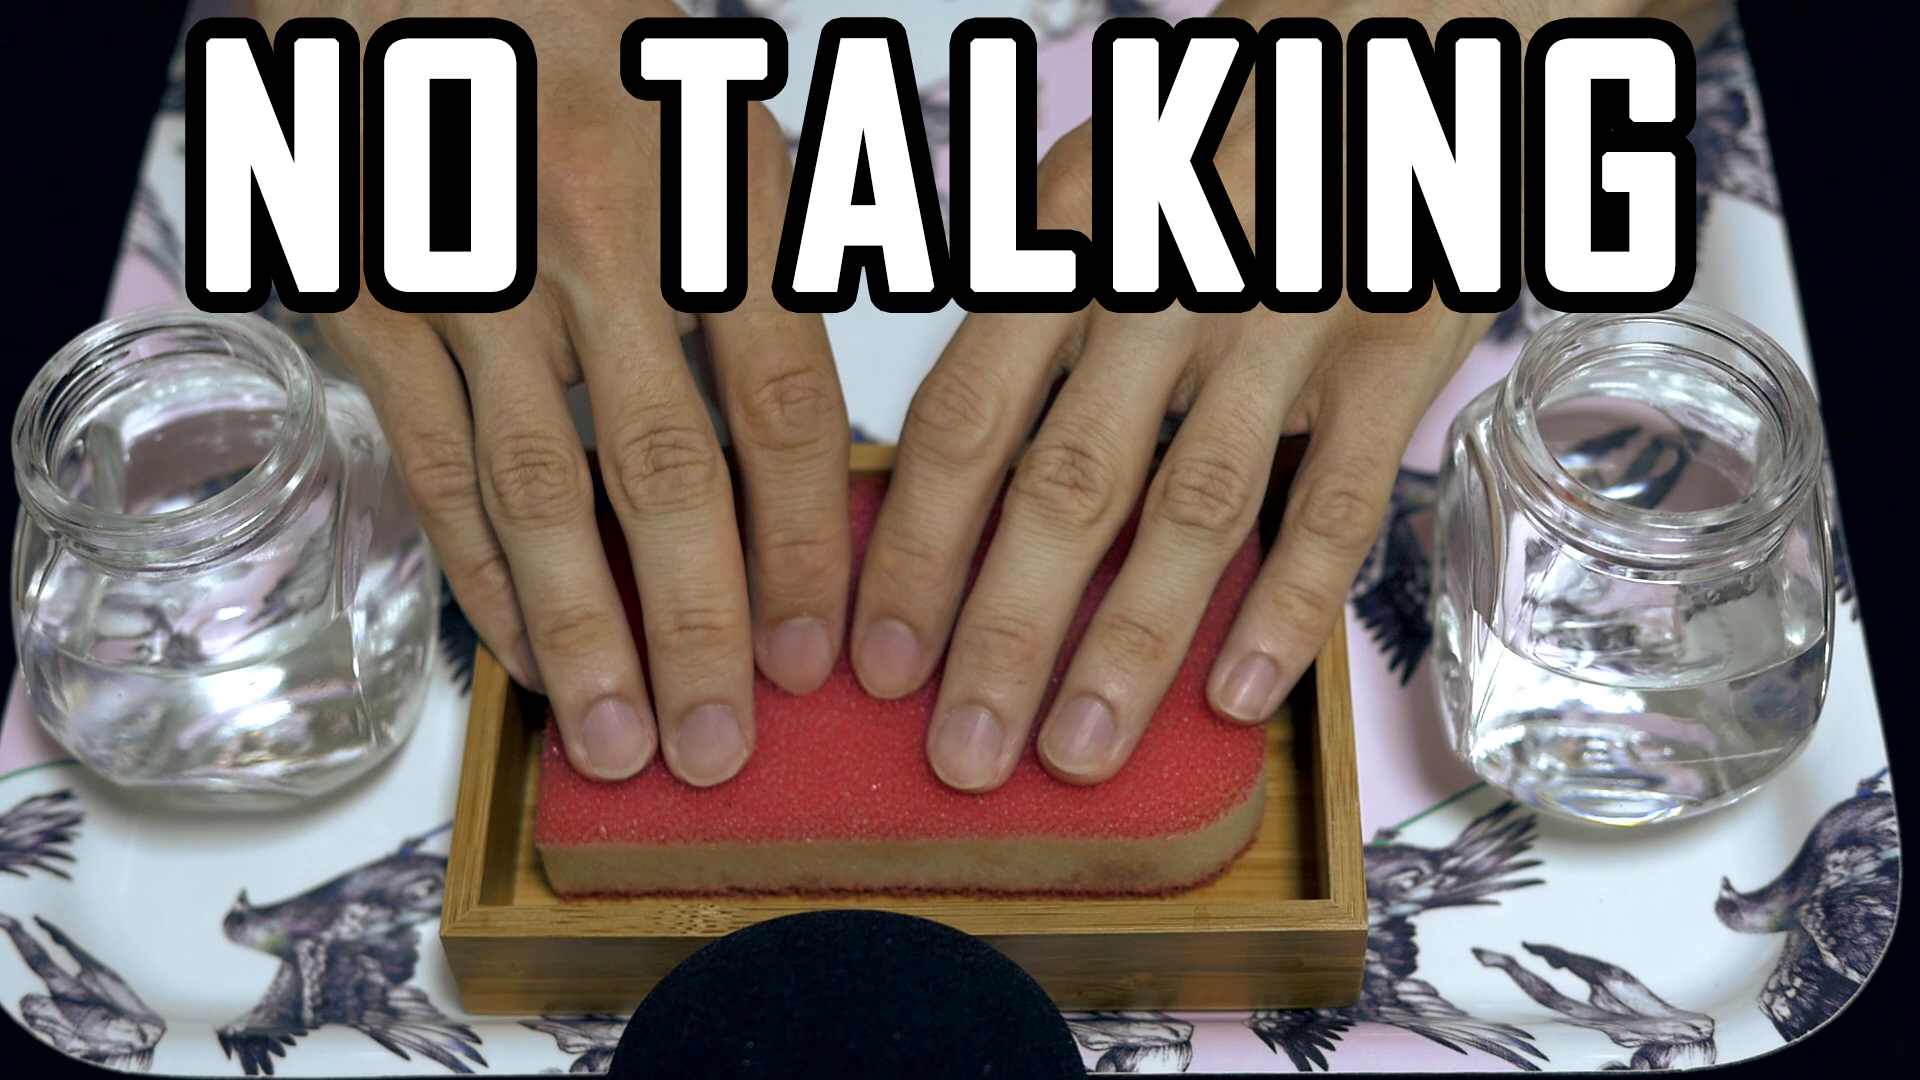 ASMR no talking video - sponge